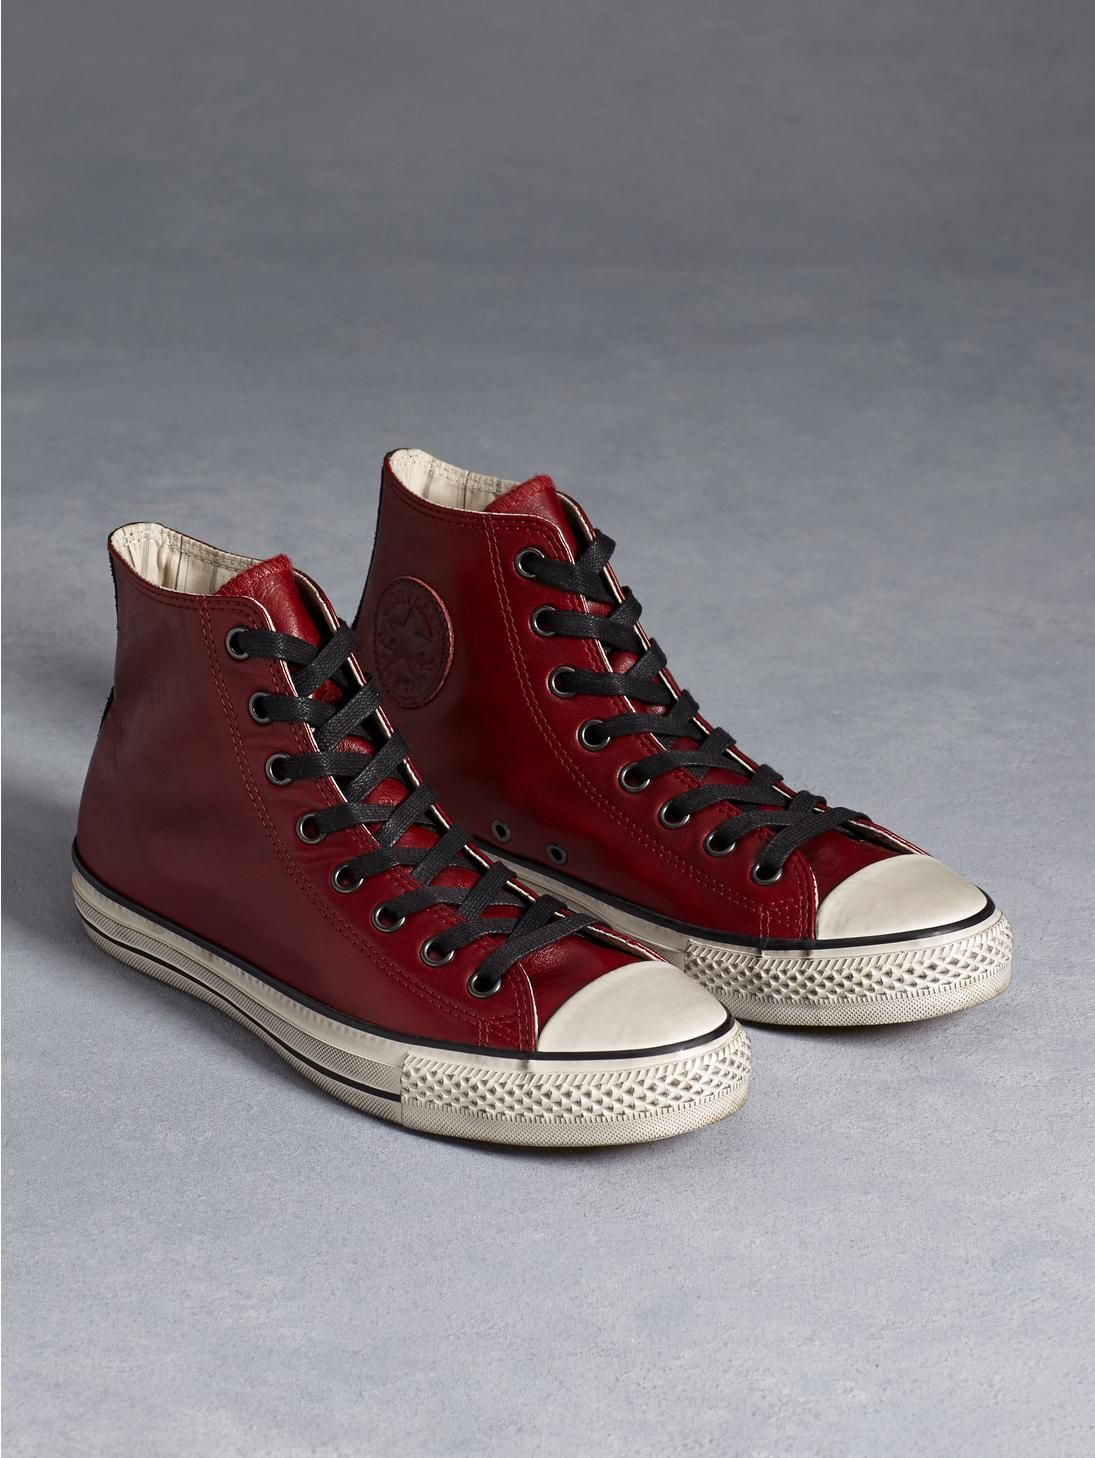 7efc4a353f85 All Star Burnished Leather Chuck Taylor in Oxblood - John Varvatos ...